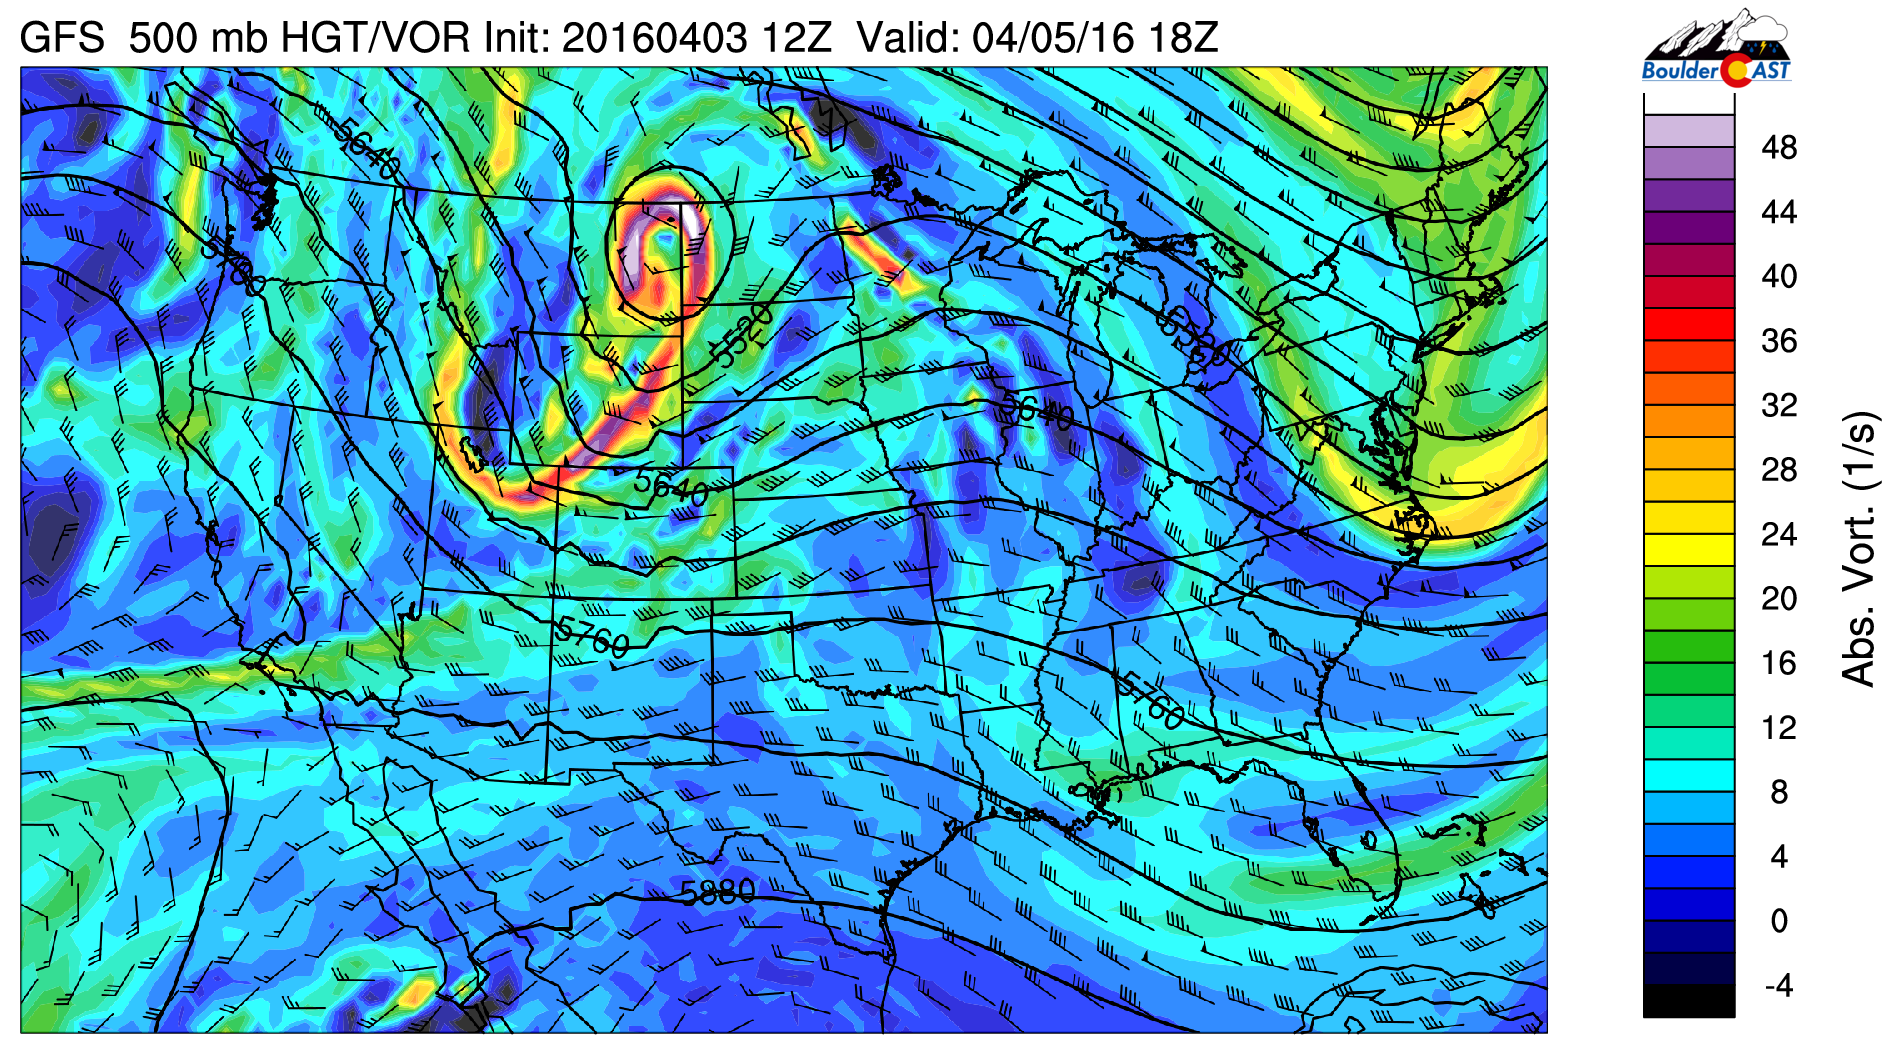 GFS 500 mb absolute vorticity for Tuesday